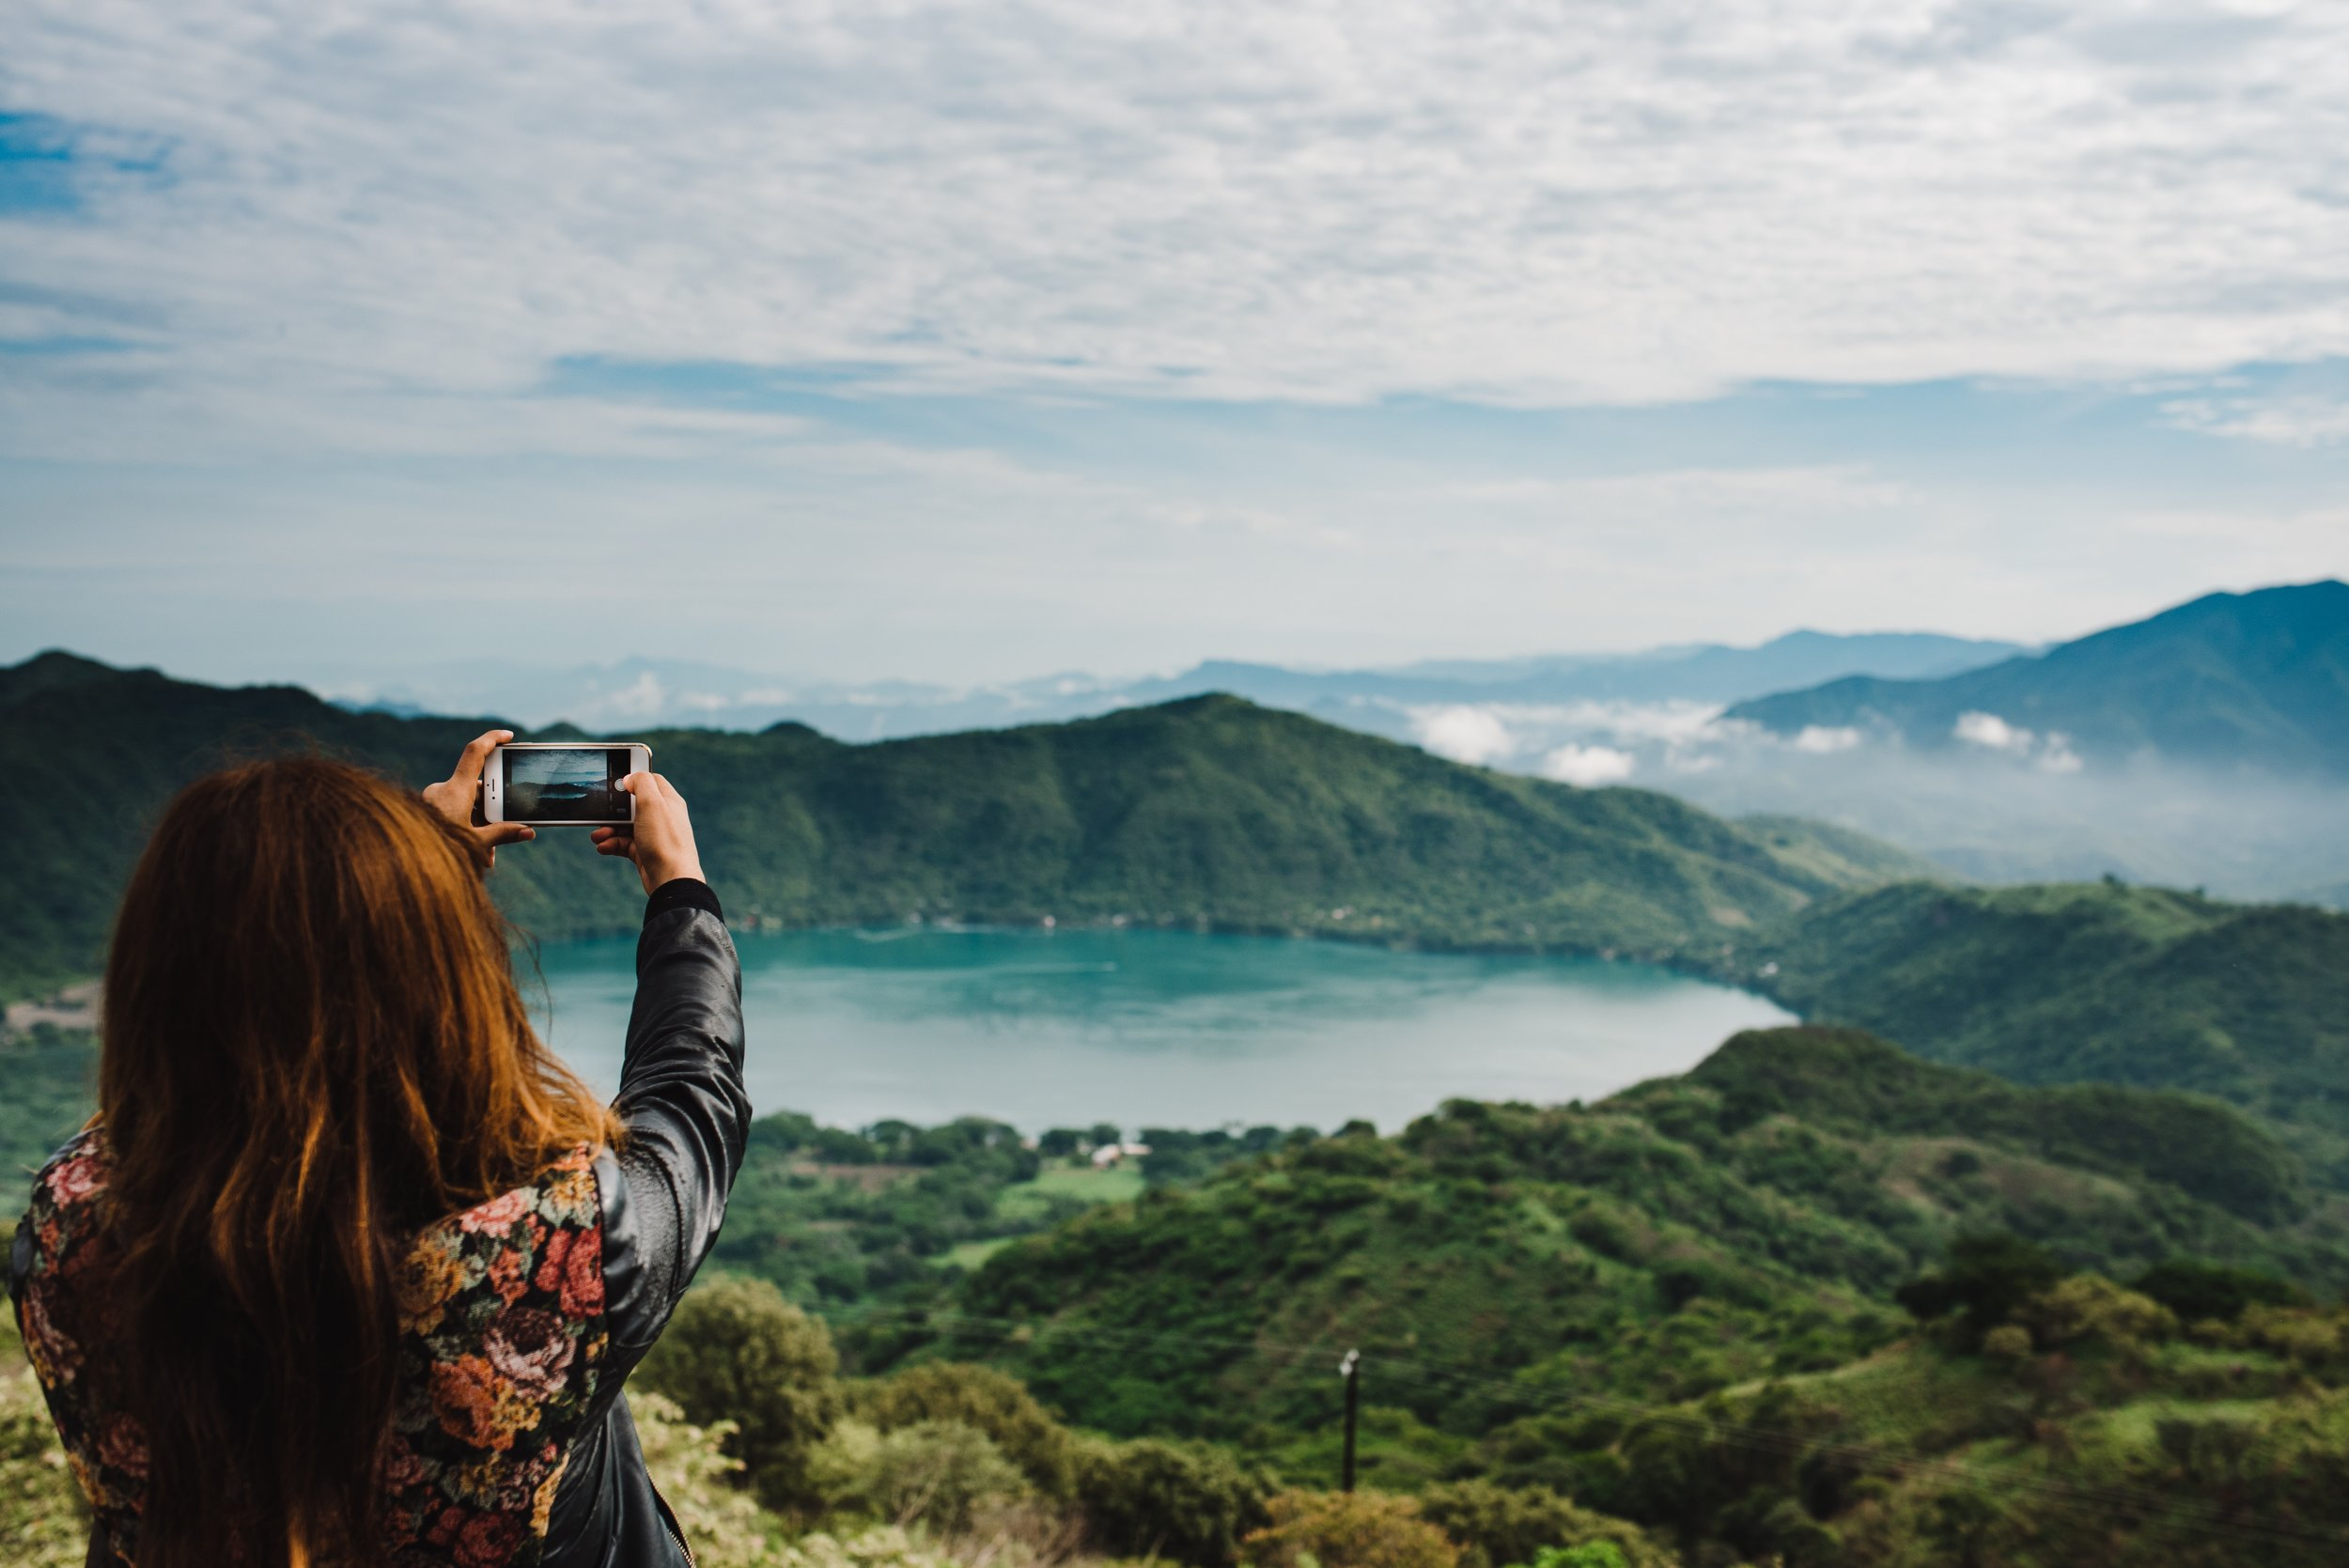 Photographer taking a picture of a mountain and the lake below it during the day time